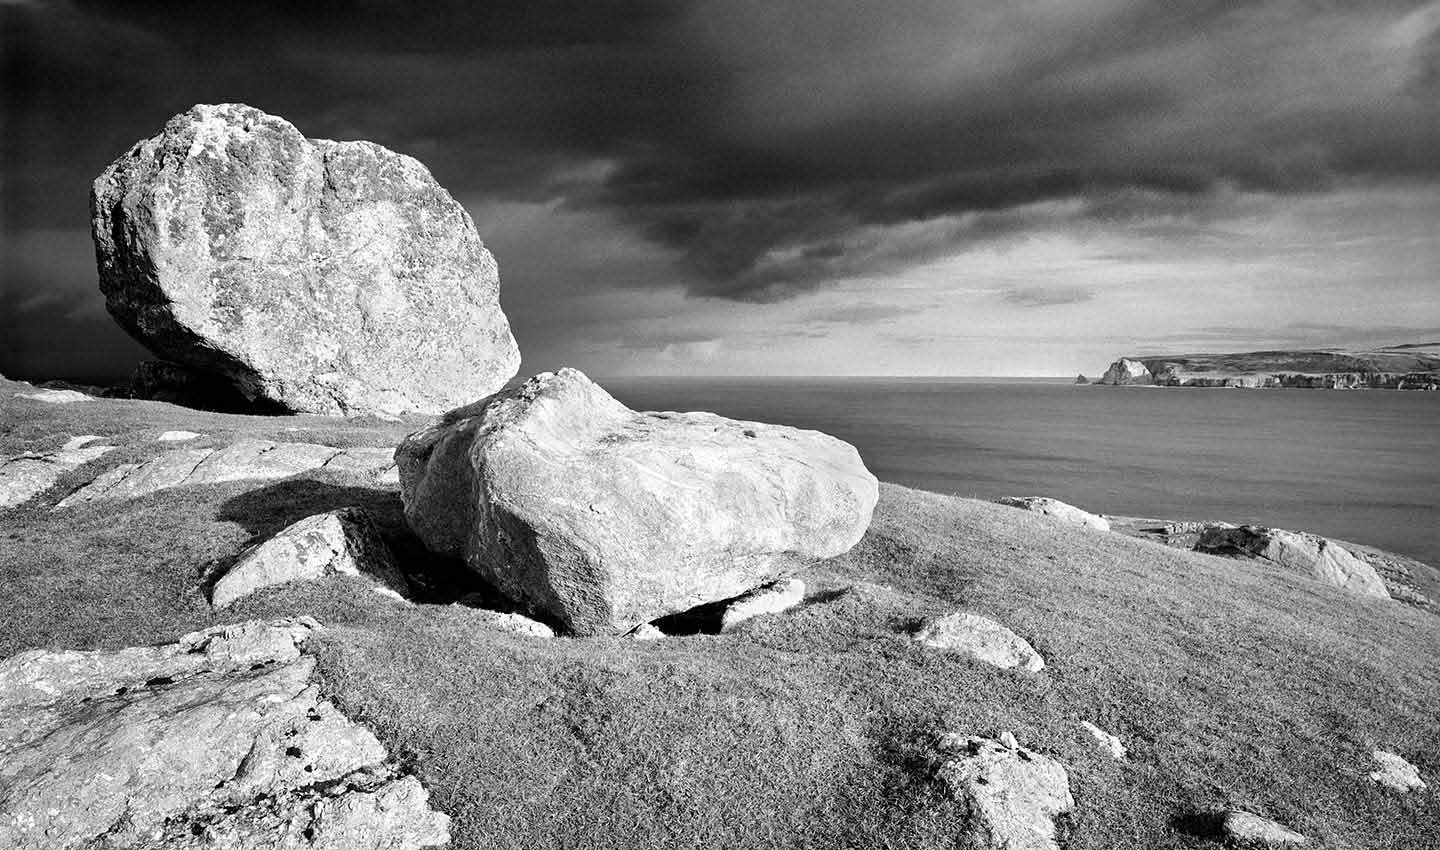 Dailbeag-Cliffs-Isle_of_Lewis-Scotland-black-and-white-mono-Photography-sea-waves-Lindsay_Robertson